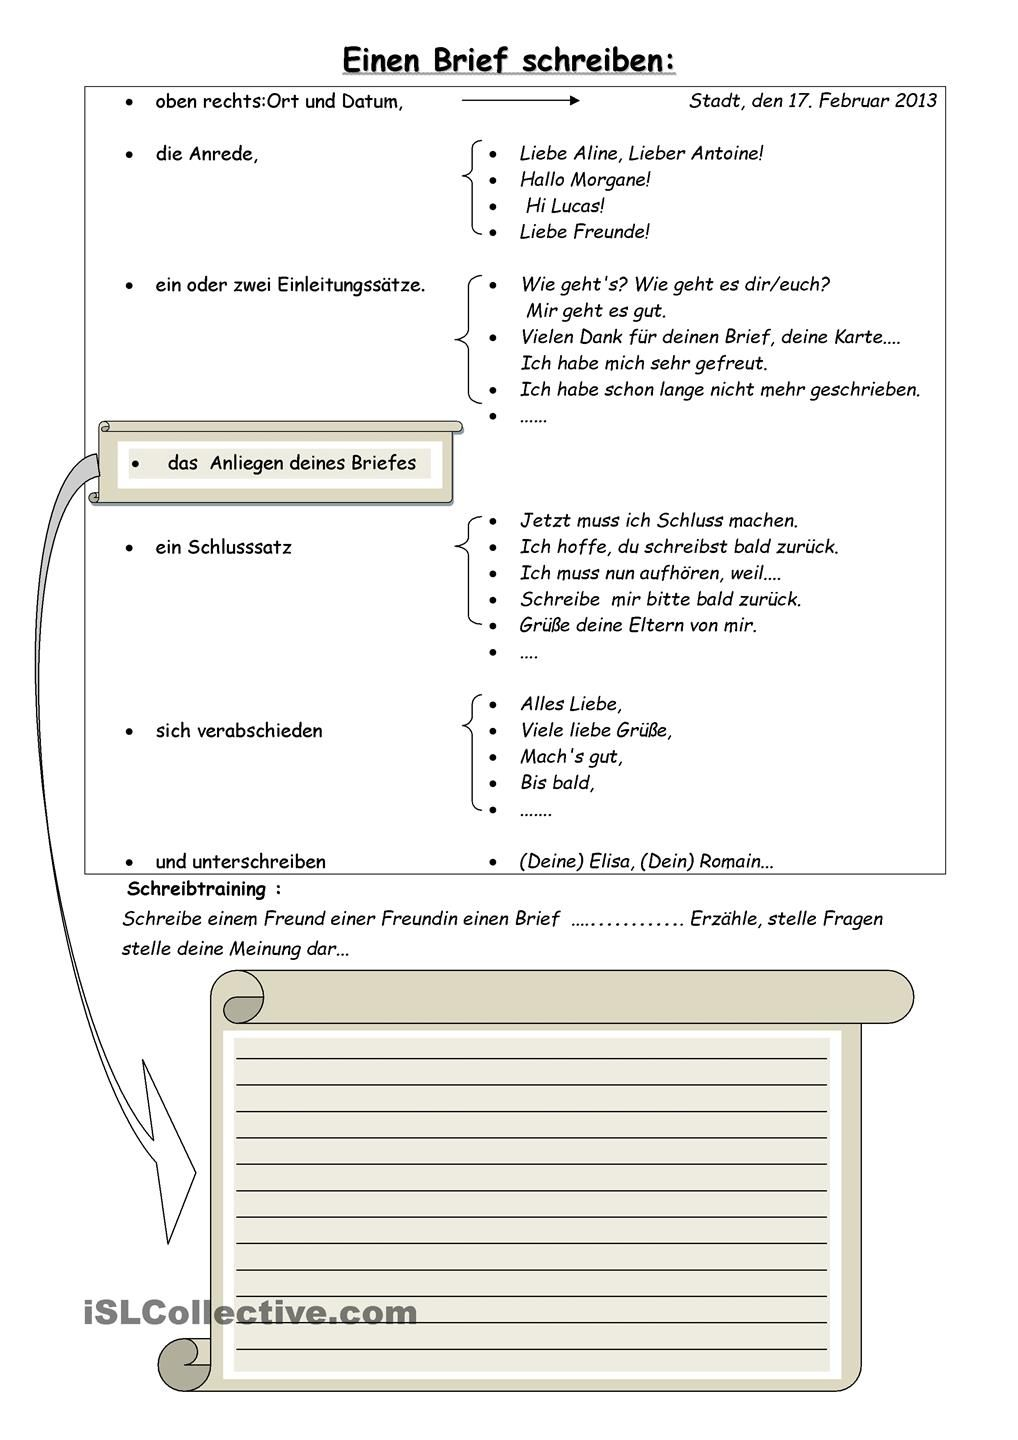 Einen Brief schreiben | Deutsch | Pinterest | German, Deutsch and ...